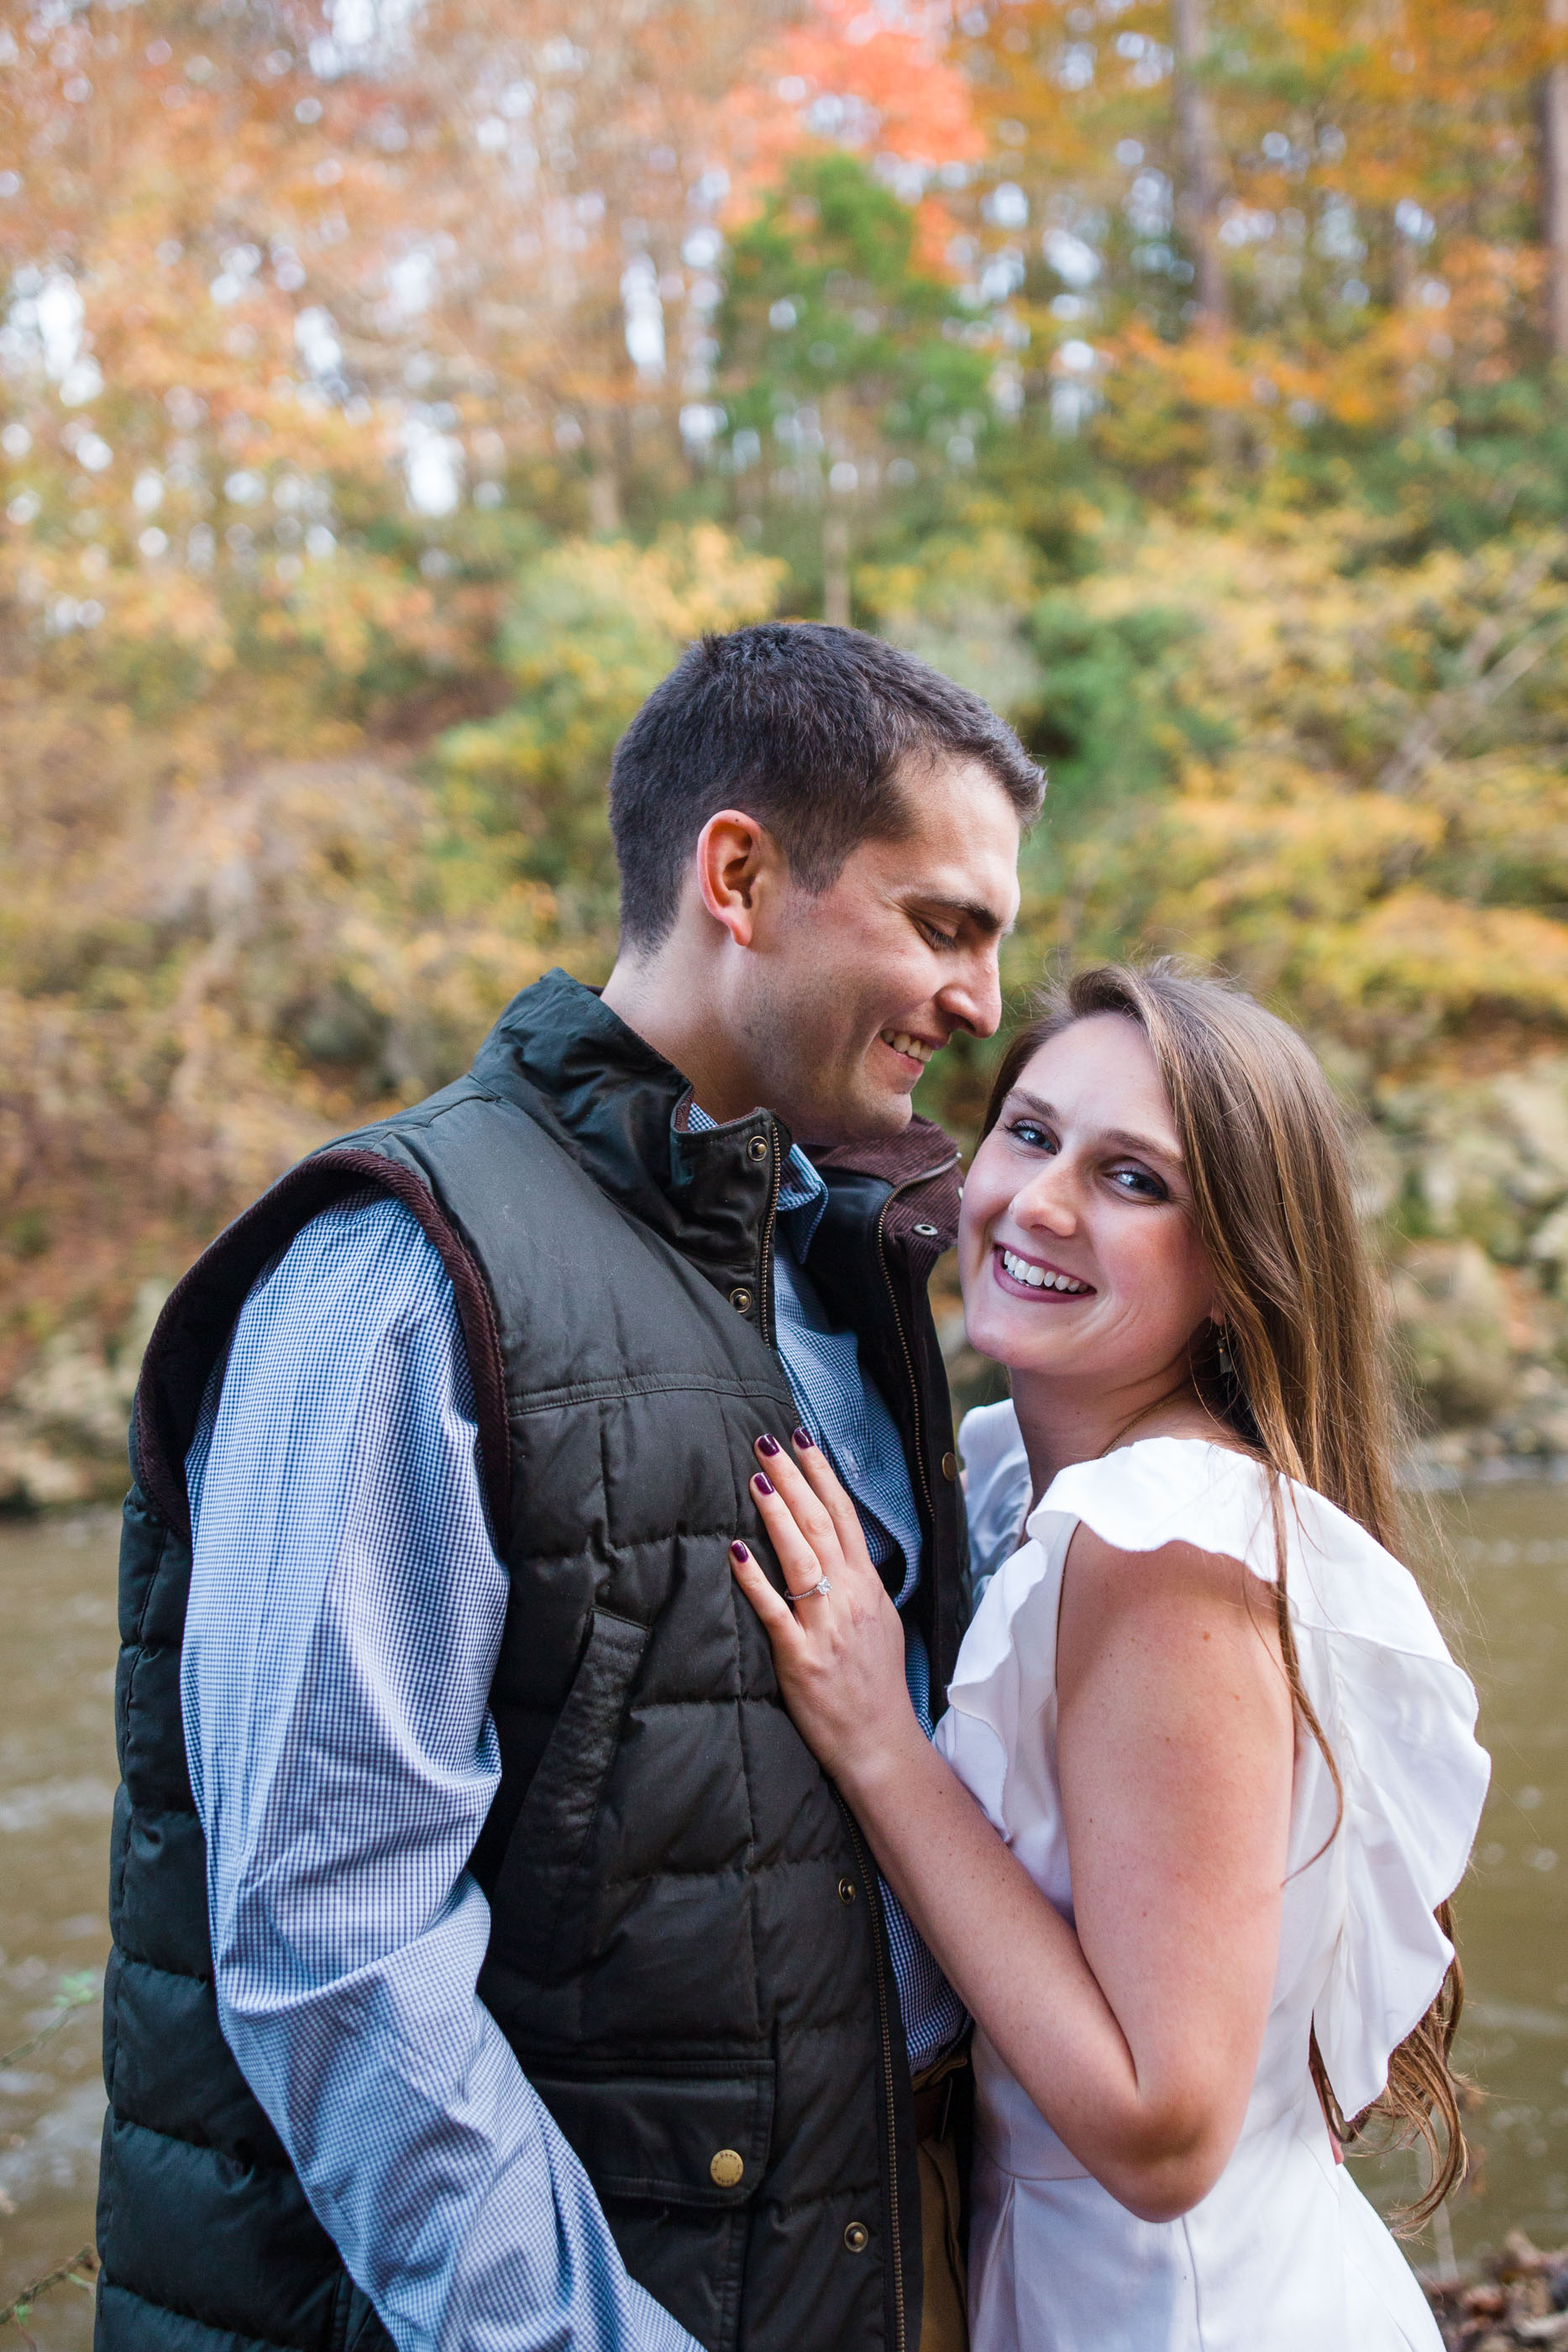 2018_11_07_michelle_francisco_engagement_eno_river-5330.jpg